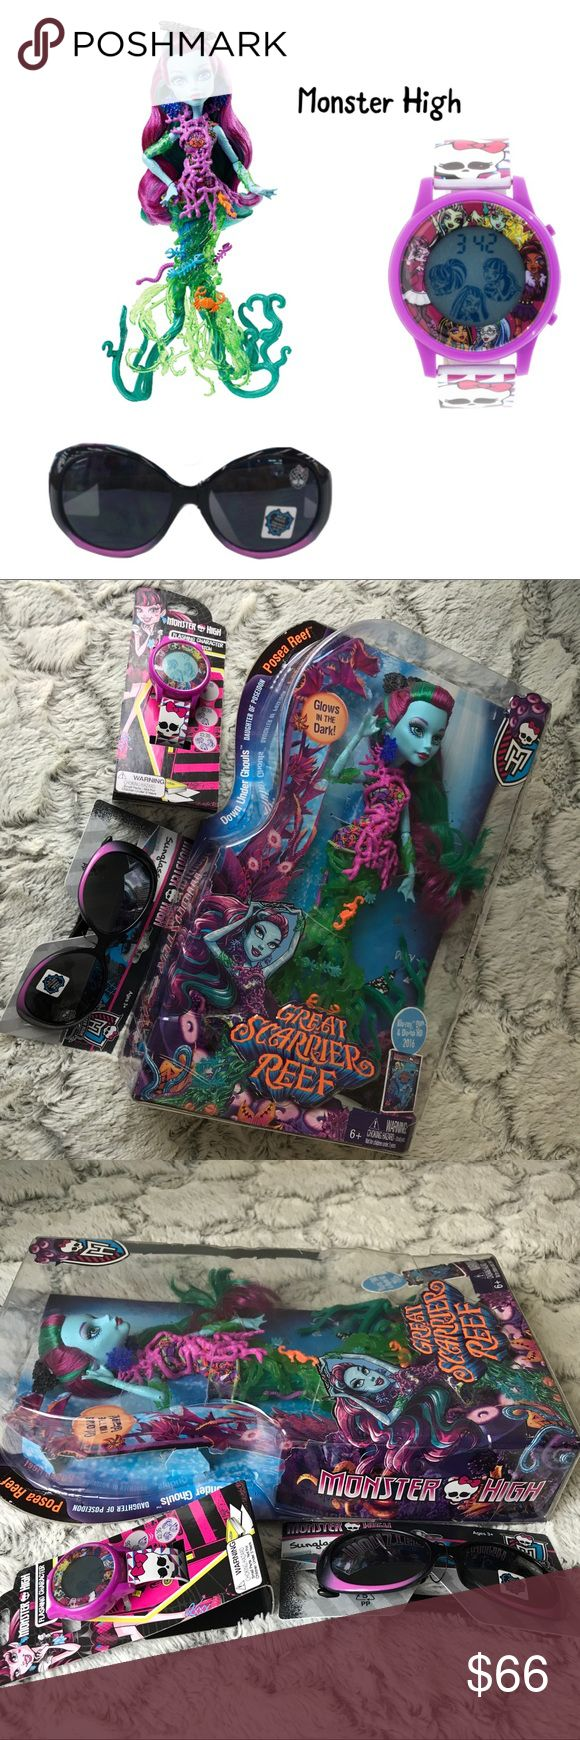 💫NWT🌸SUMMER Girl Monster High 3Piece Set🐝 New Girl Monster High 3Piece Set includes: 1 New Girl Monster High Sunglasses, 1 New Girl Monster High Flashing Character LCD Watch and 1 New Girl Monster High Great Scarrier Reef Toy.  All brand new w Tag and in Box. Mattel Accessories